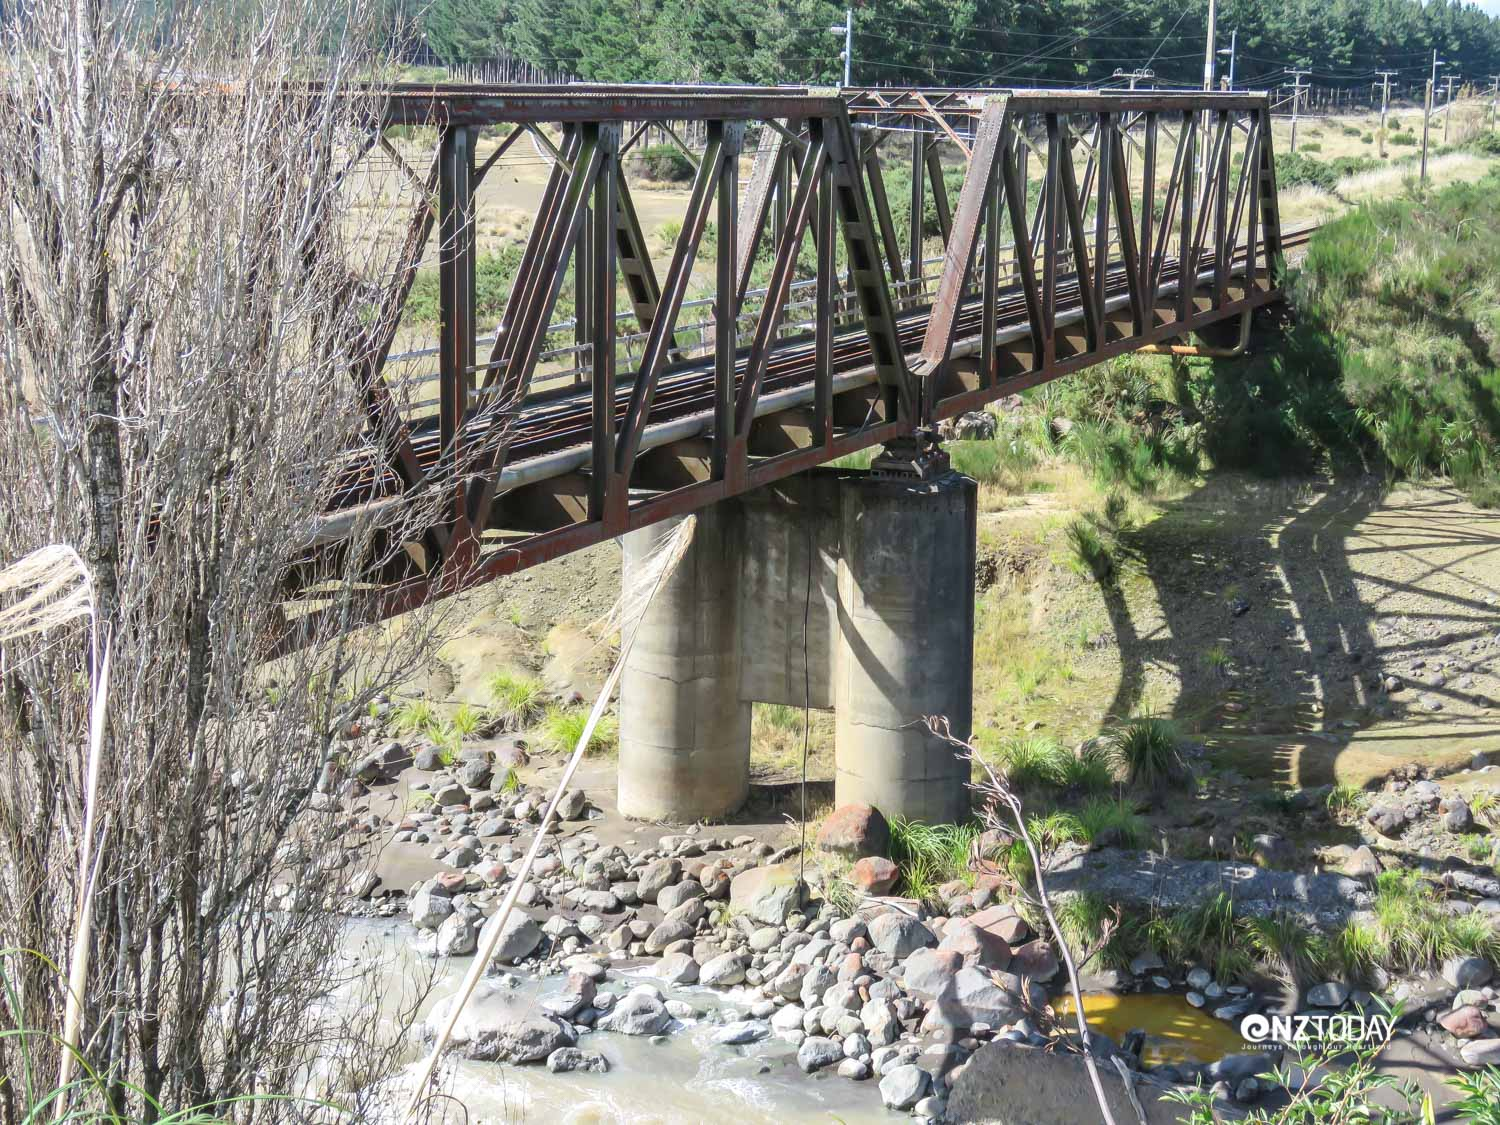 Tangiwai rail bridge today